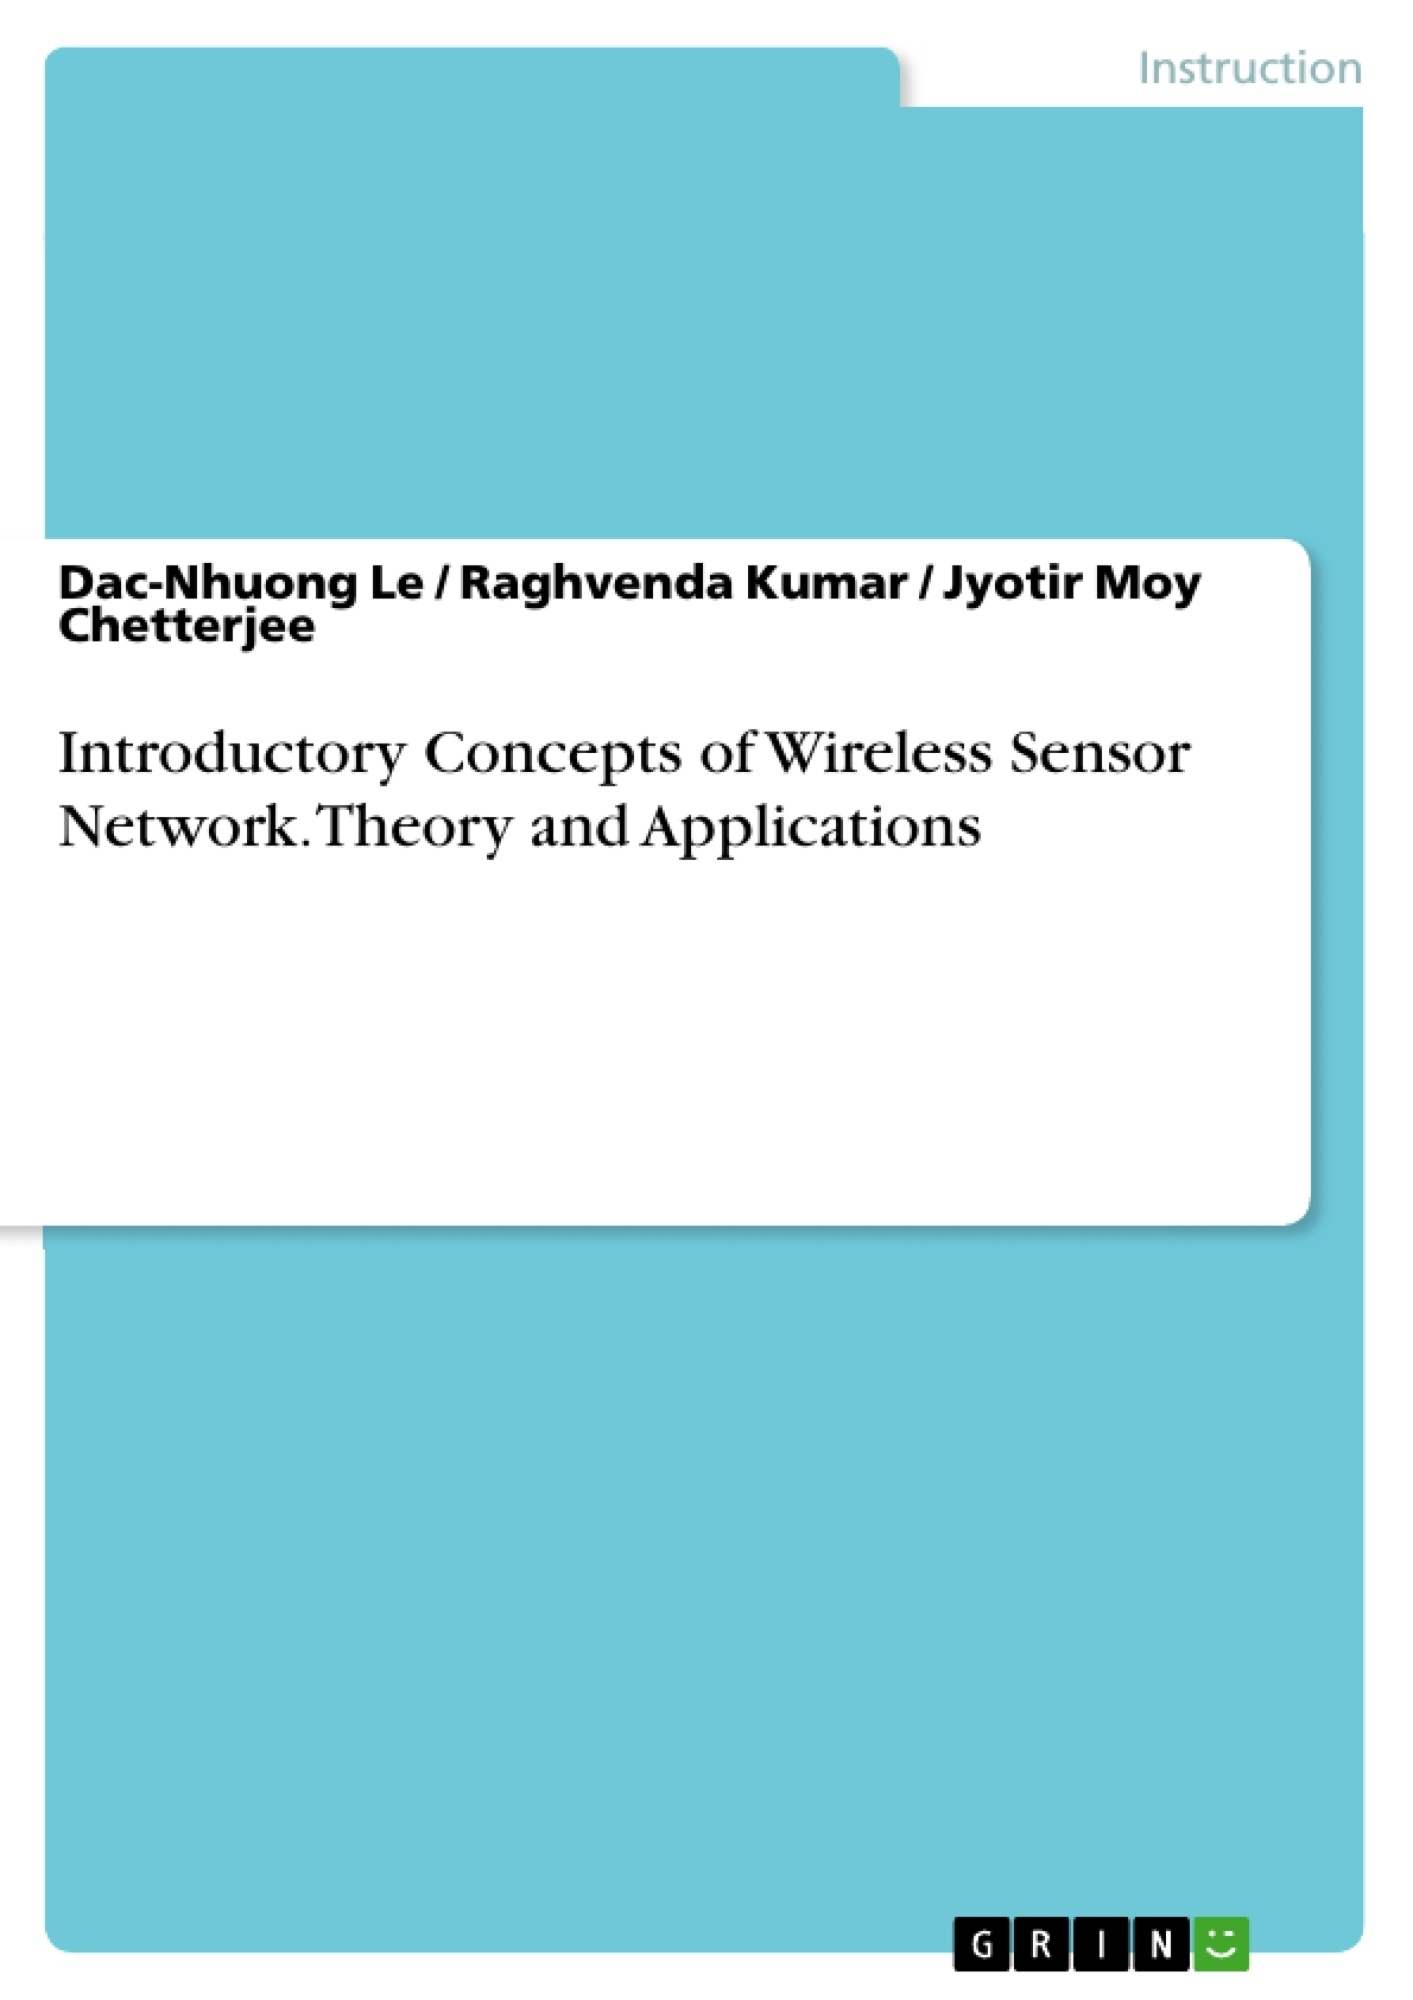 Introductory Concepts of Wireless Sensor Network. Theory and ...